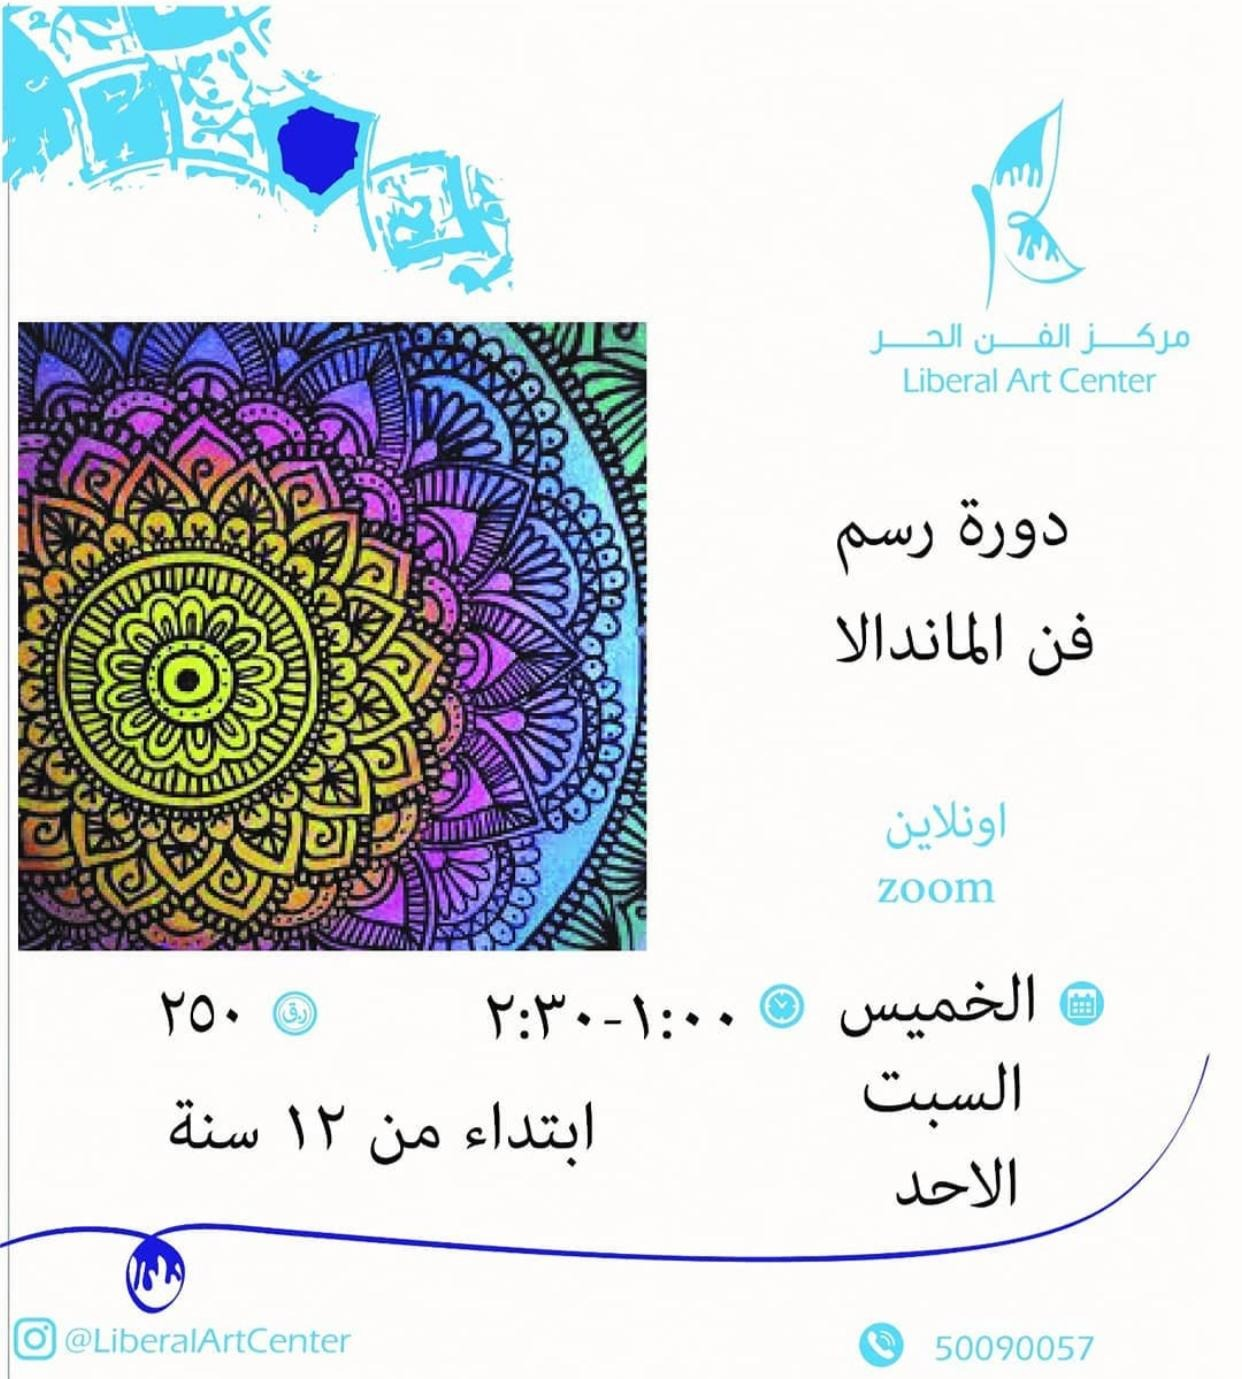 Doha Where & When .. Recreational and educational activities (Aug 20-25)